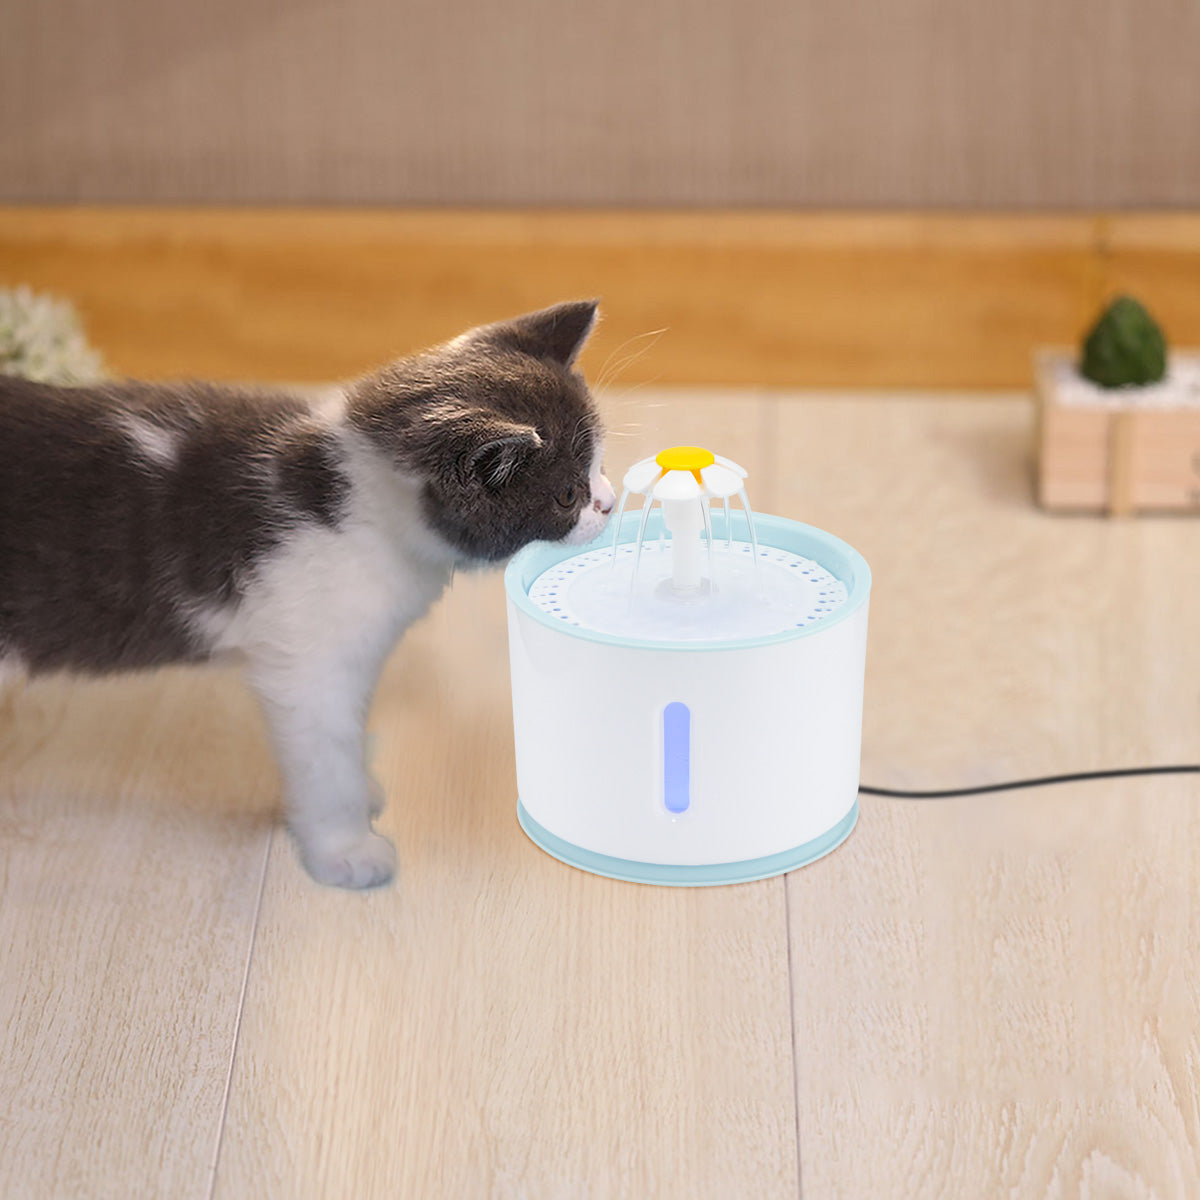 LED Cat Water Fountain - 50% Off Today!